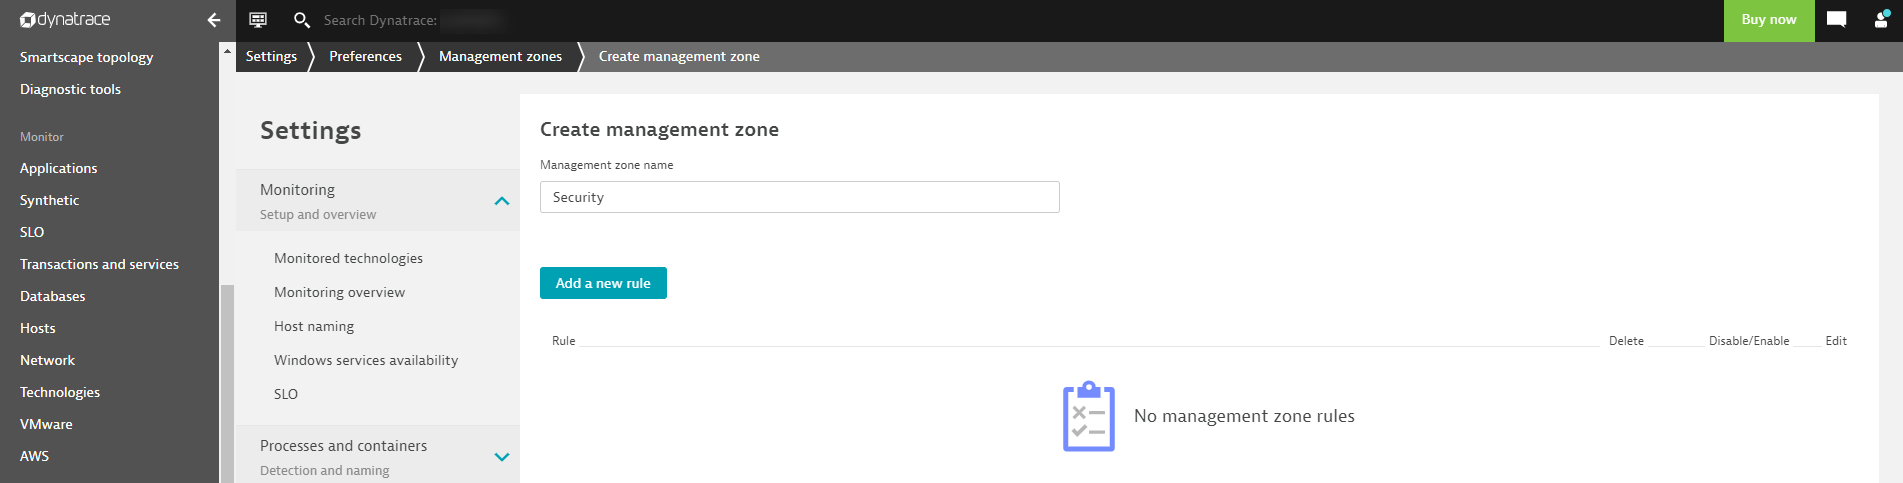 Create a management zone